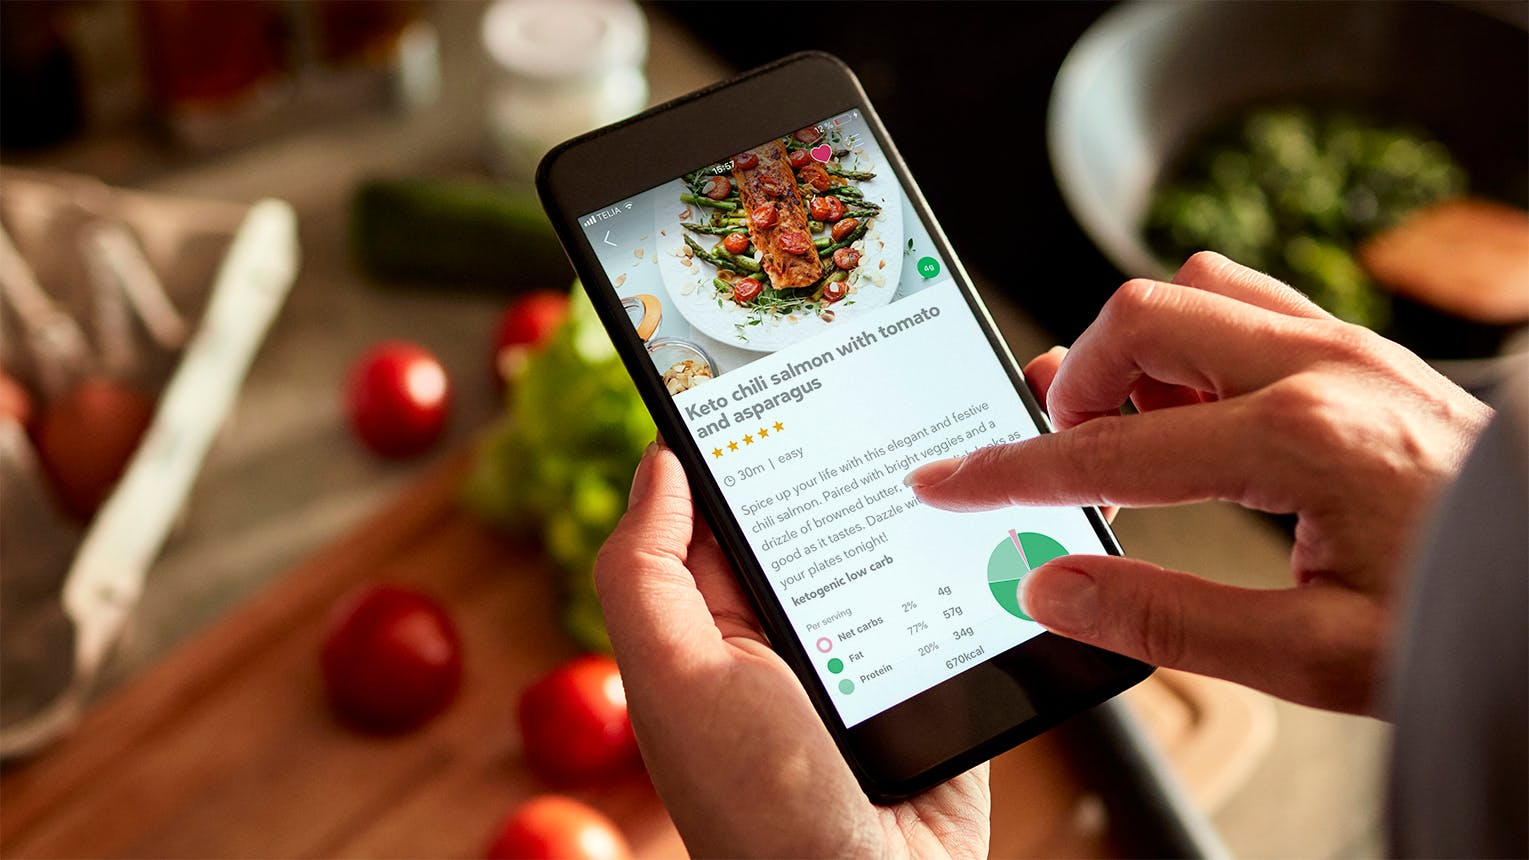 We just launched our first app: Diet Doctor Eat!